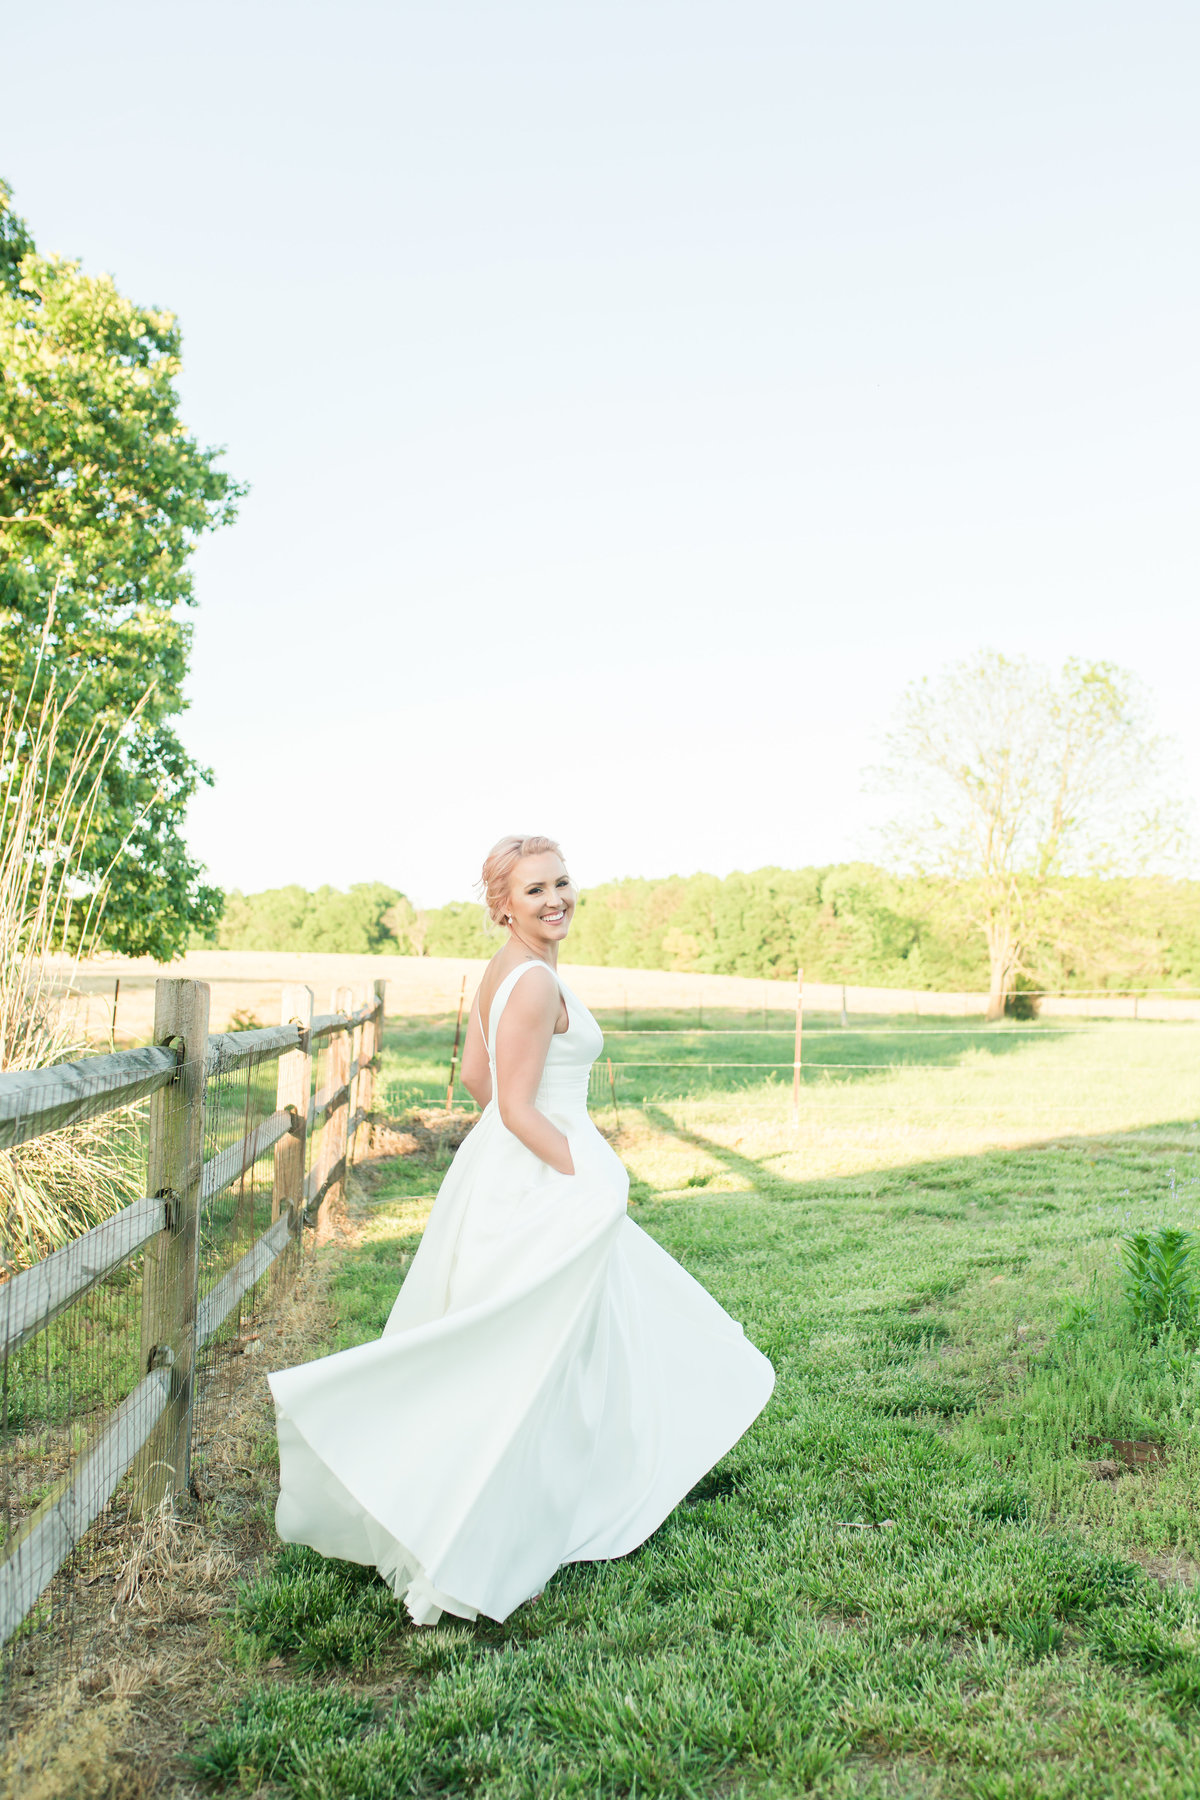 DGP_Cranford-Outen-Wedding_SneakPeek (54 of 90)